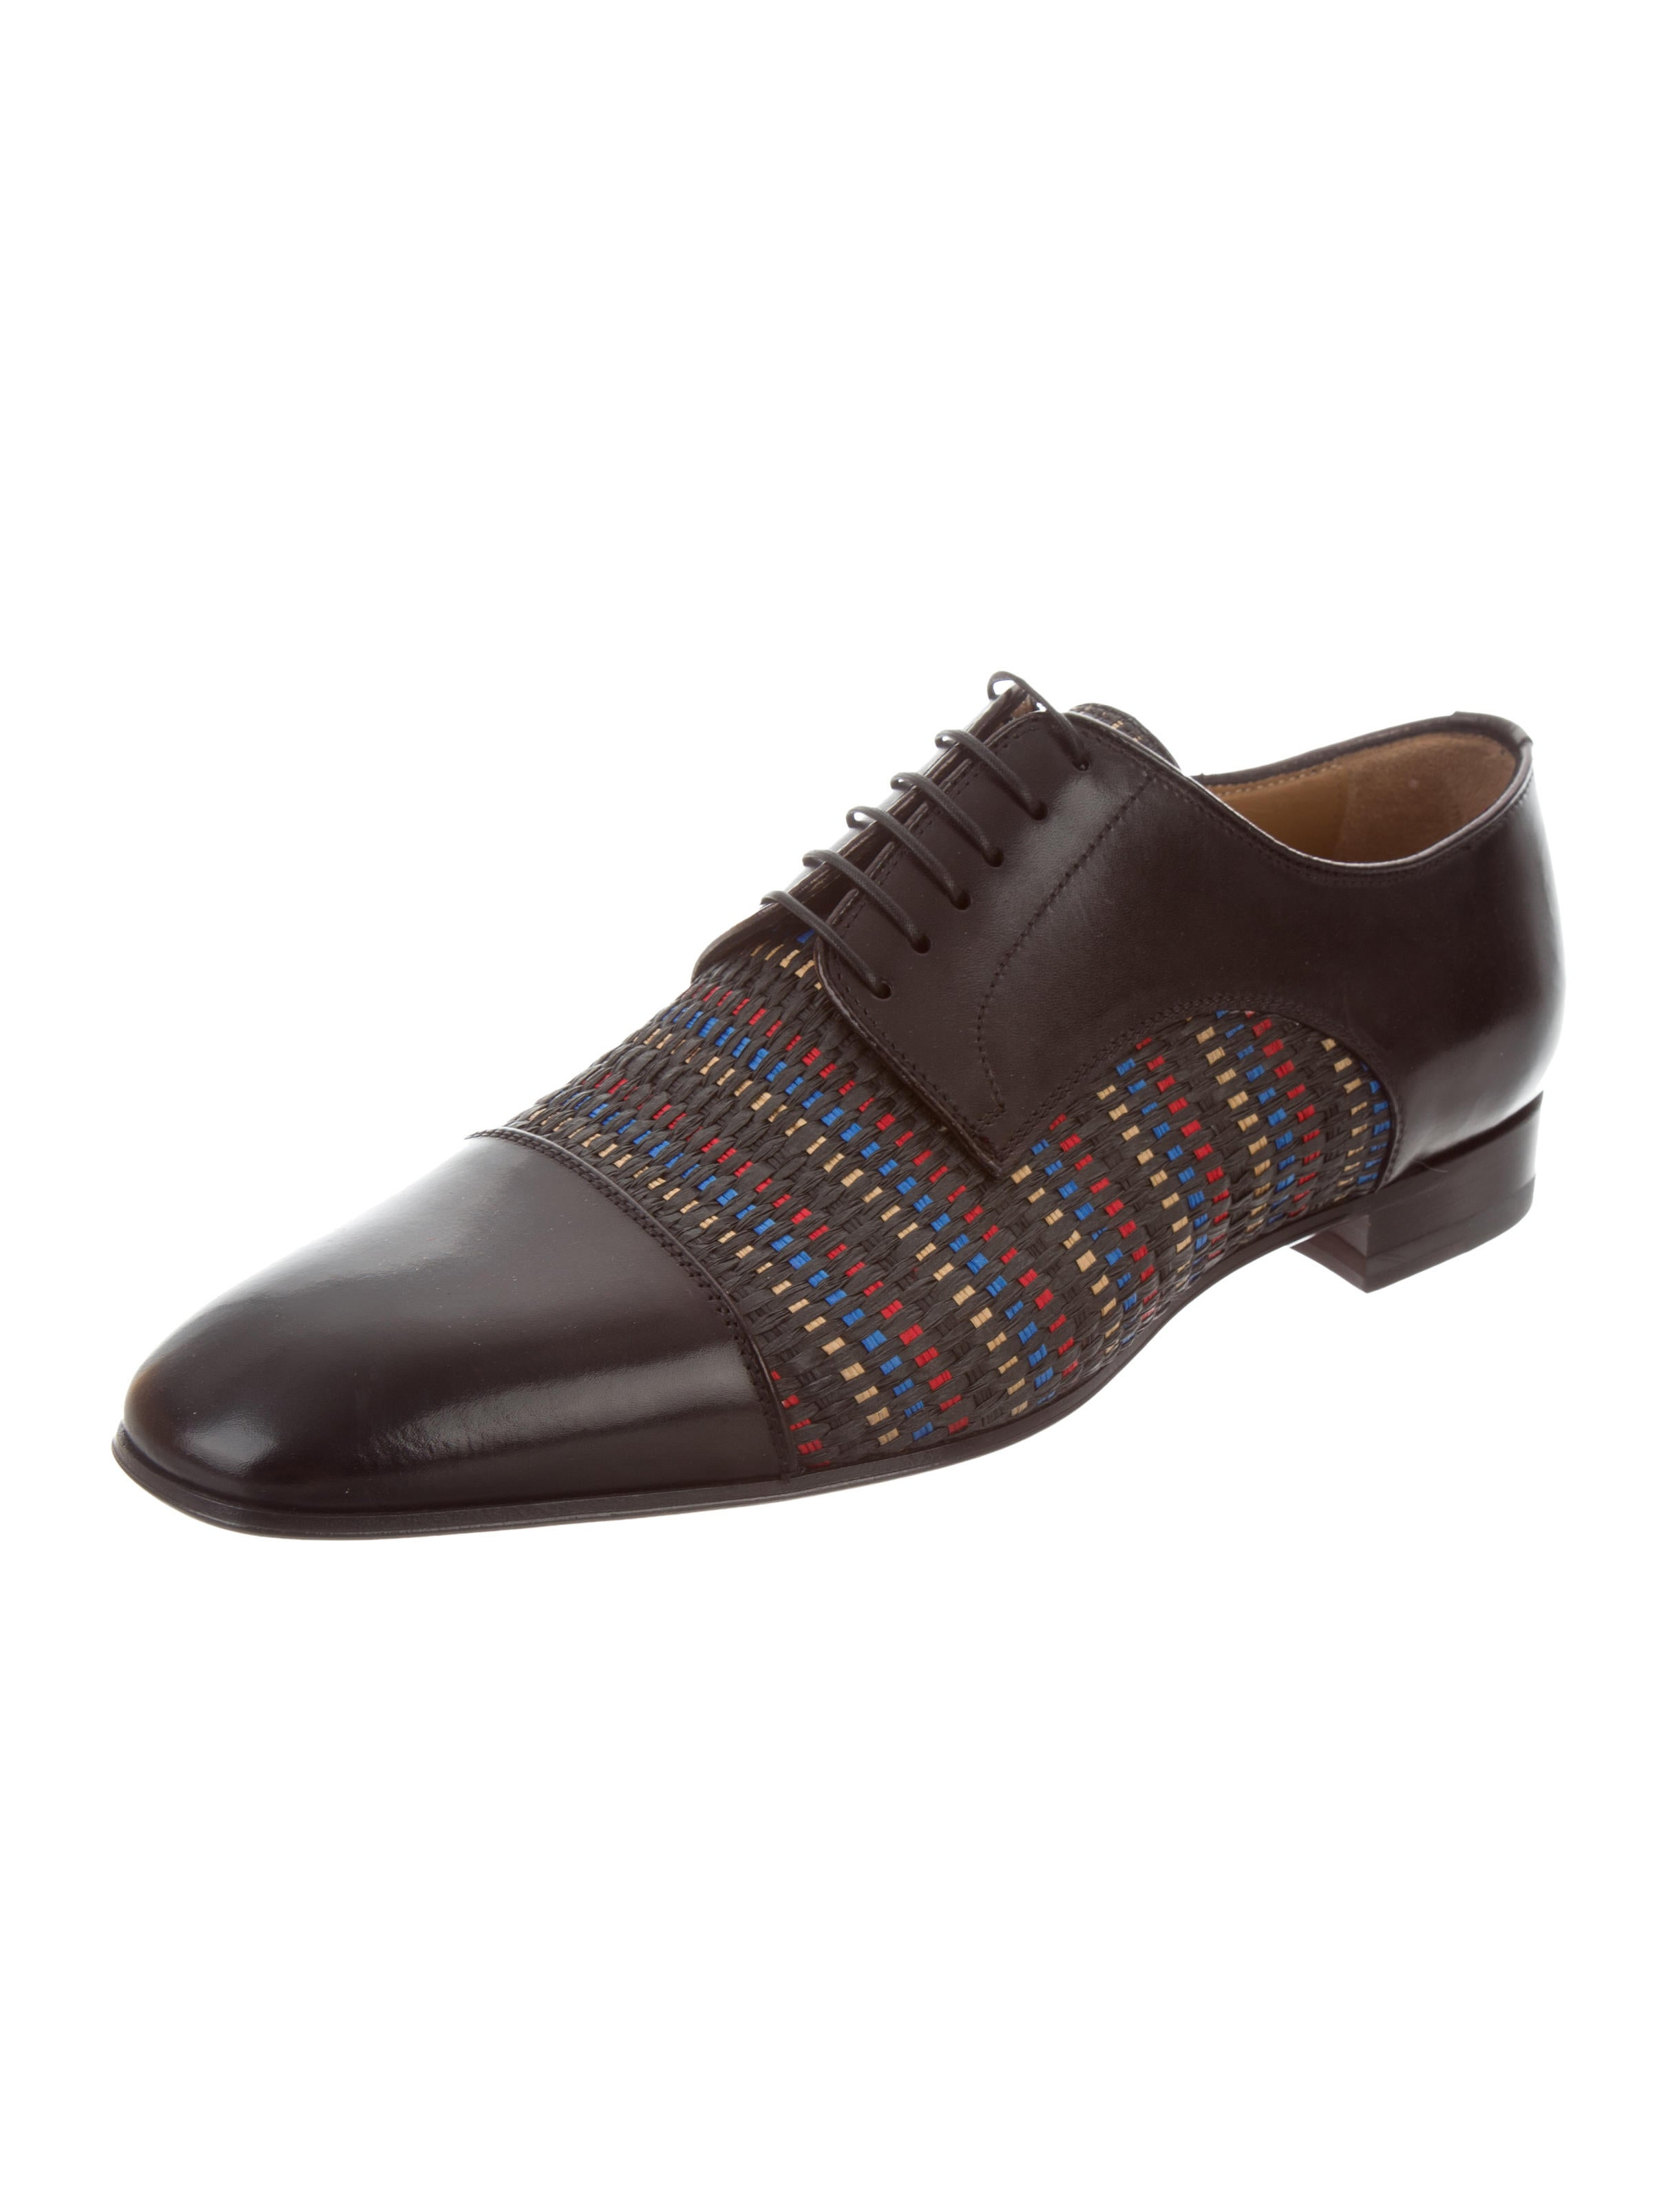 christian louboutin woven leather derby shoes w tags